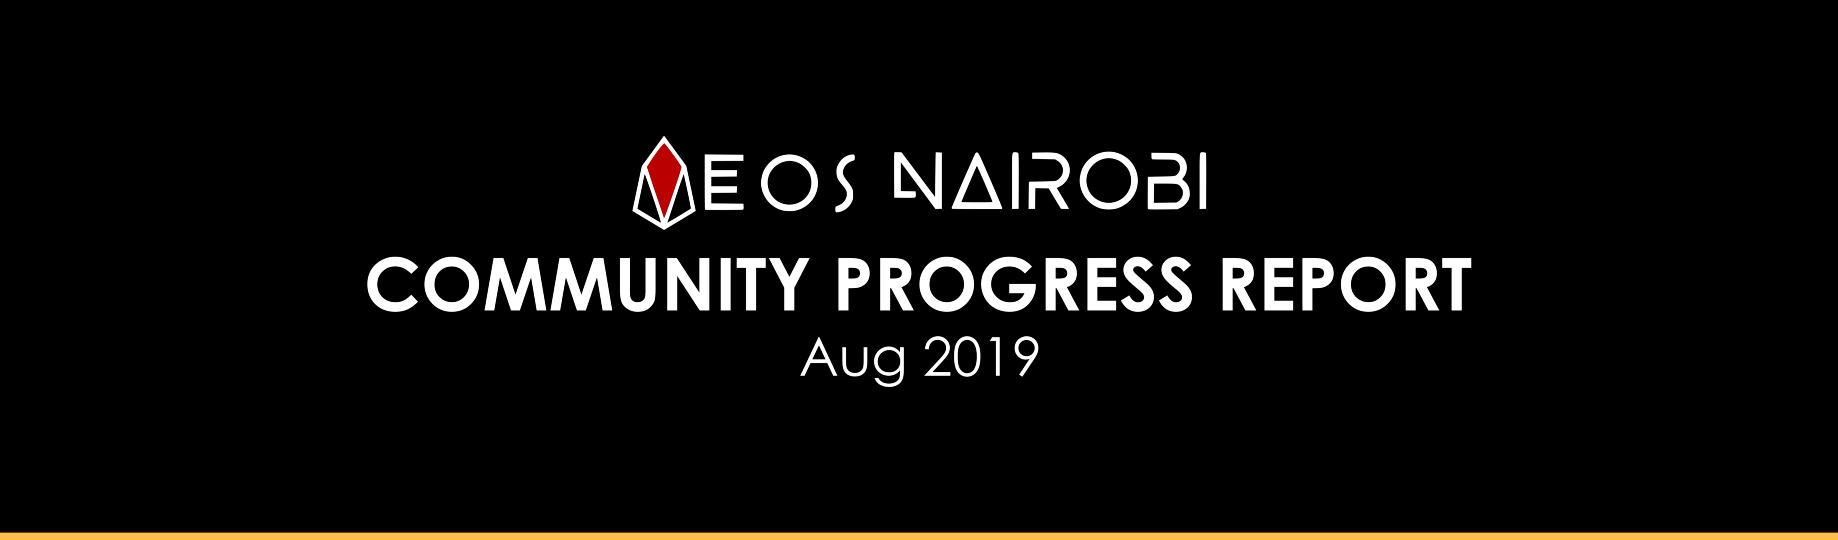 0bc176fb709 With EOS having marked a year since its launch, the community has numerous  successes to look back on and a promising future with the technology and the  ...